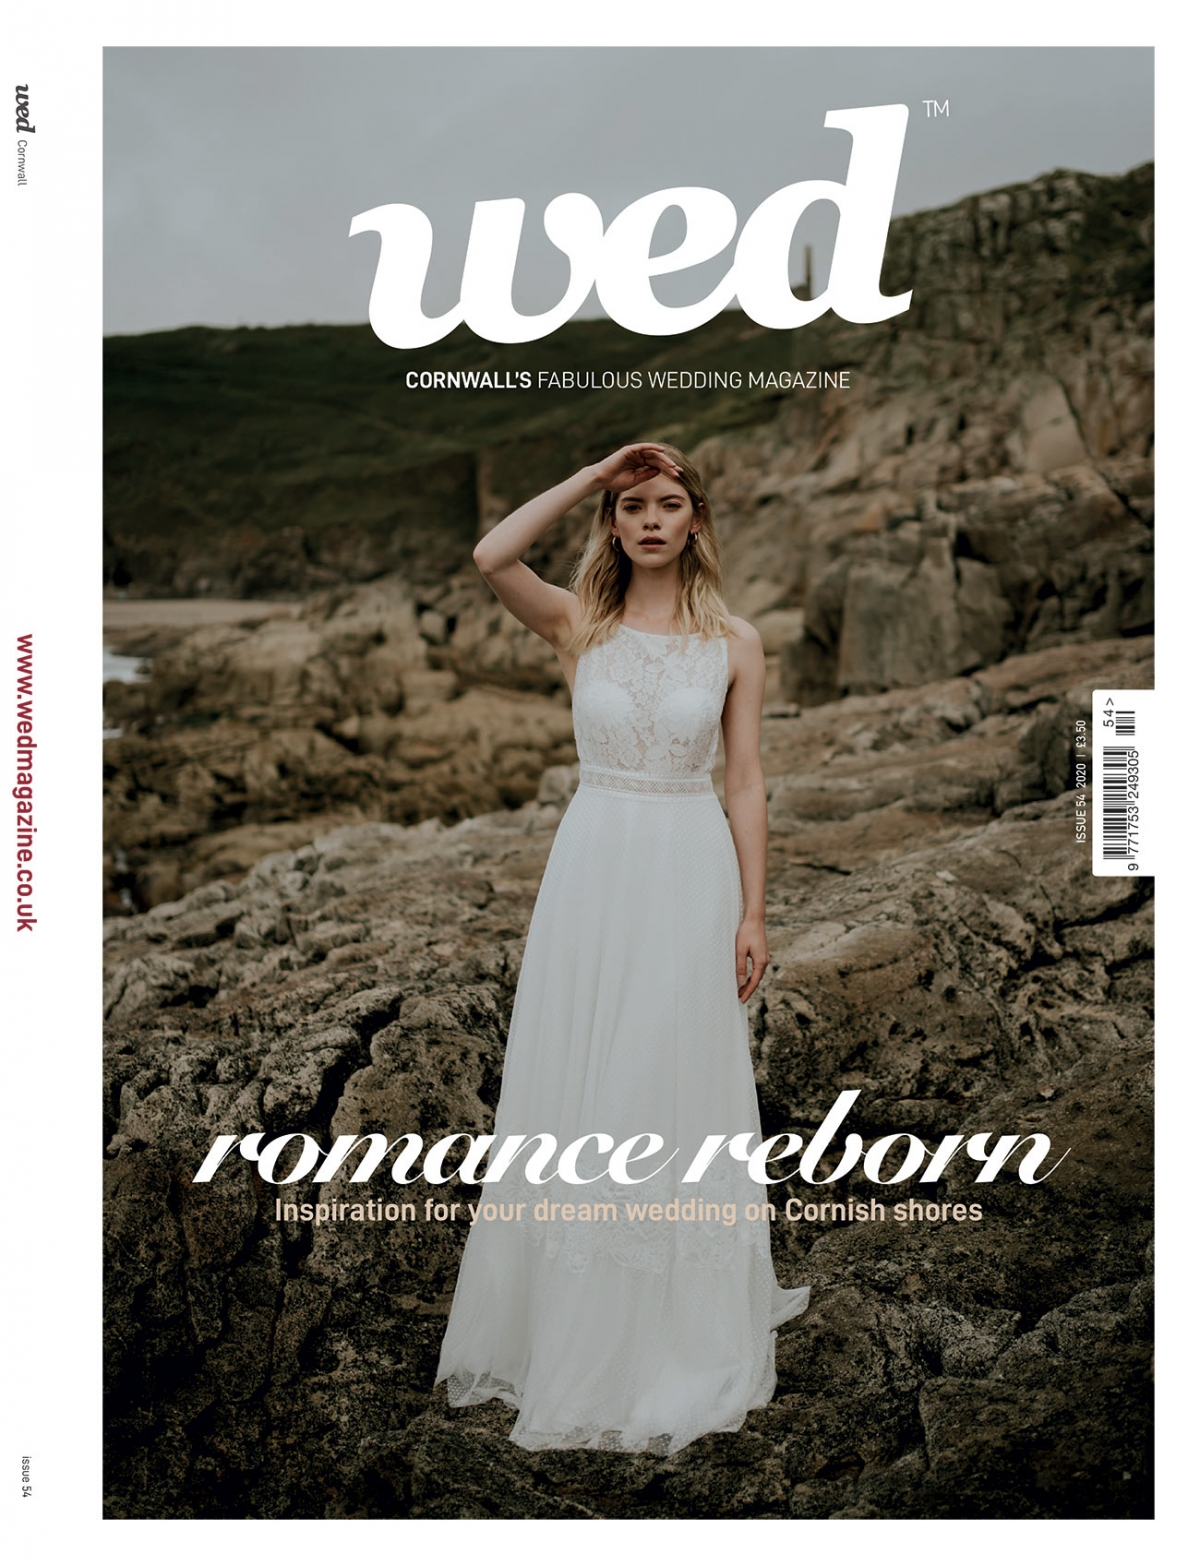 Order a print copy of Cornwall Wed Magazine - Issue 54